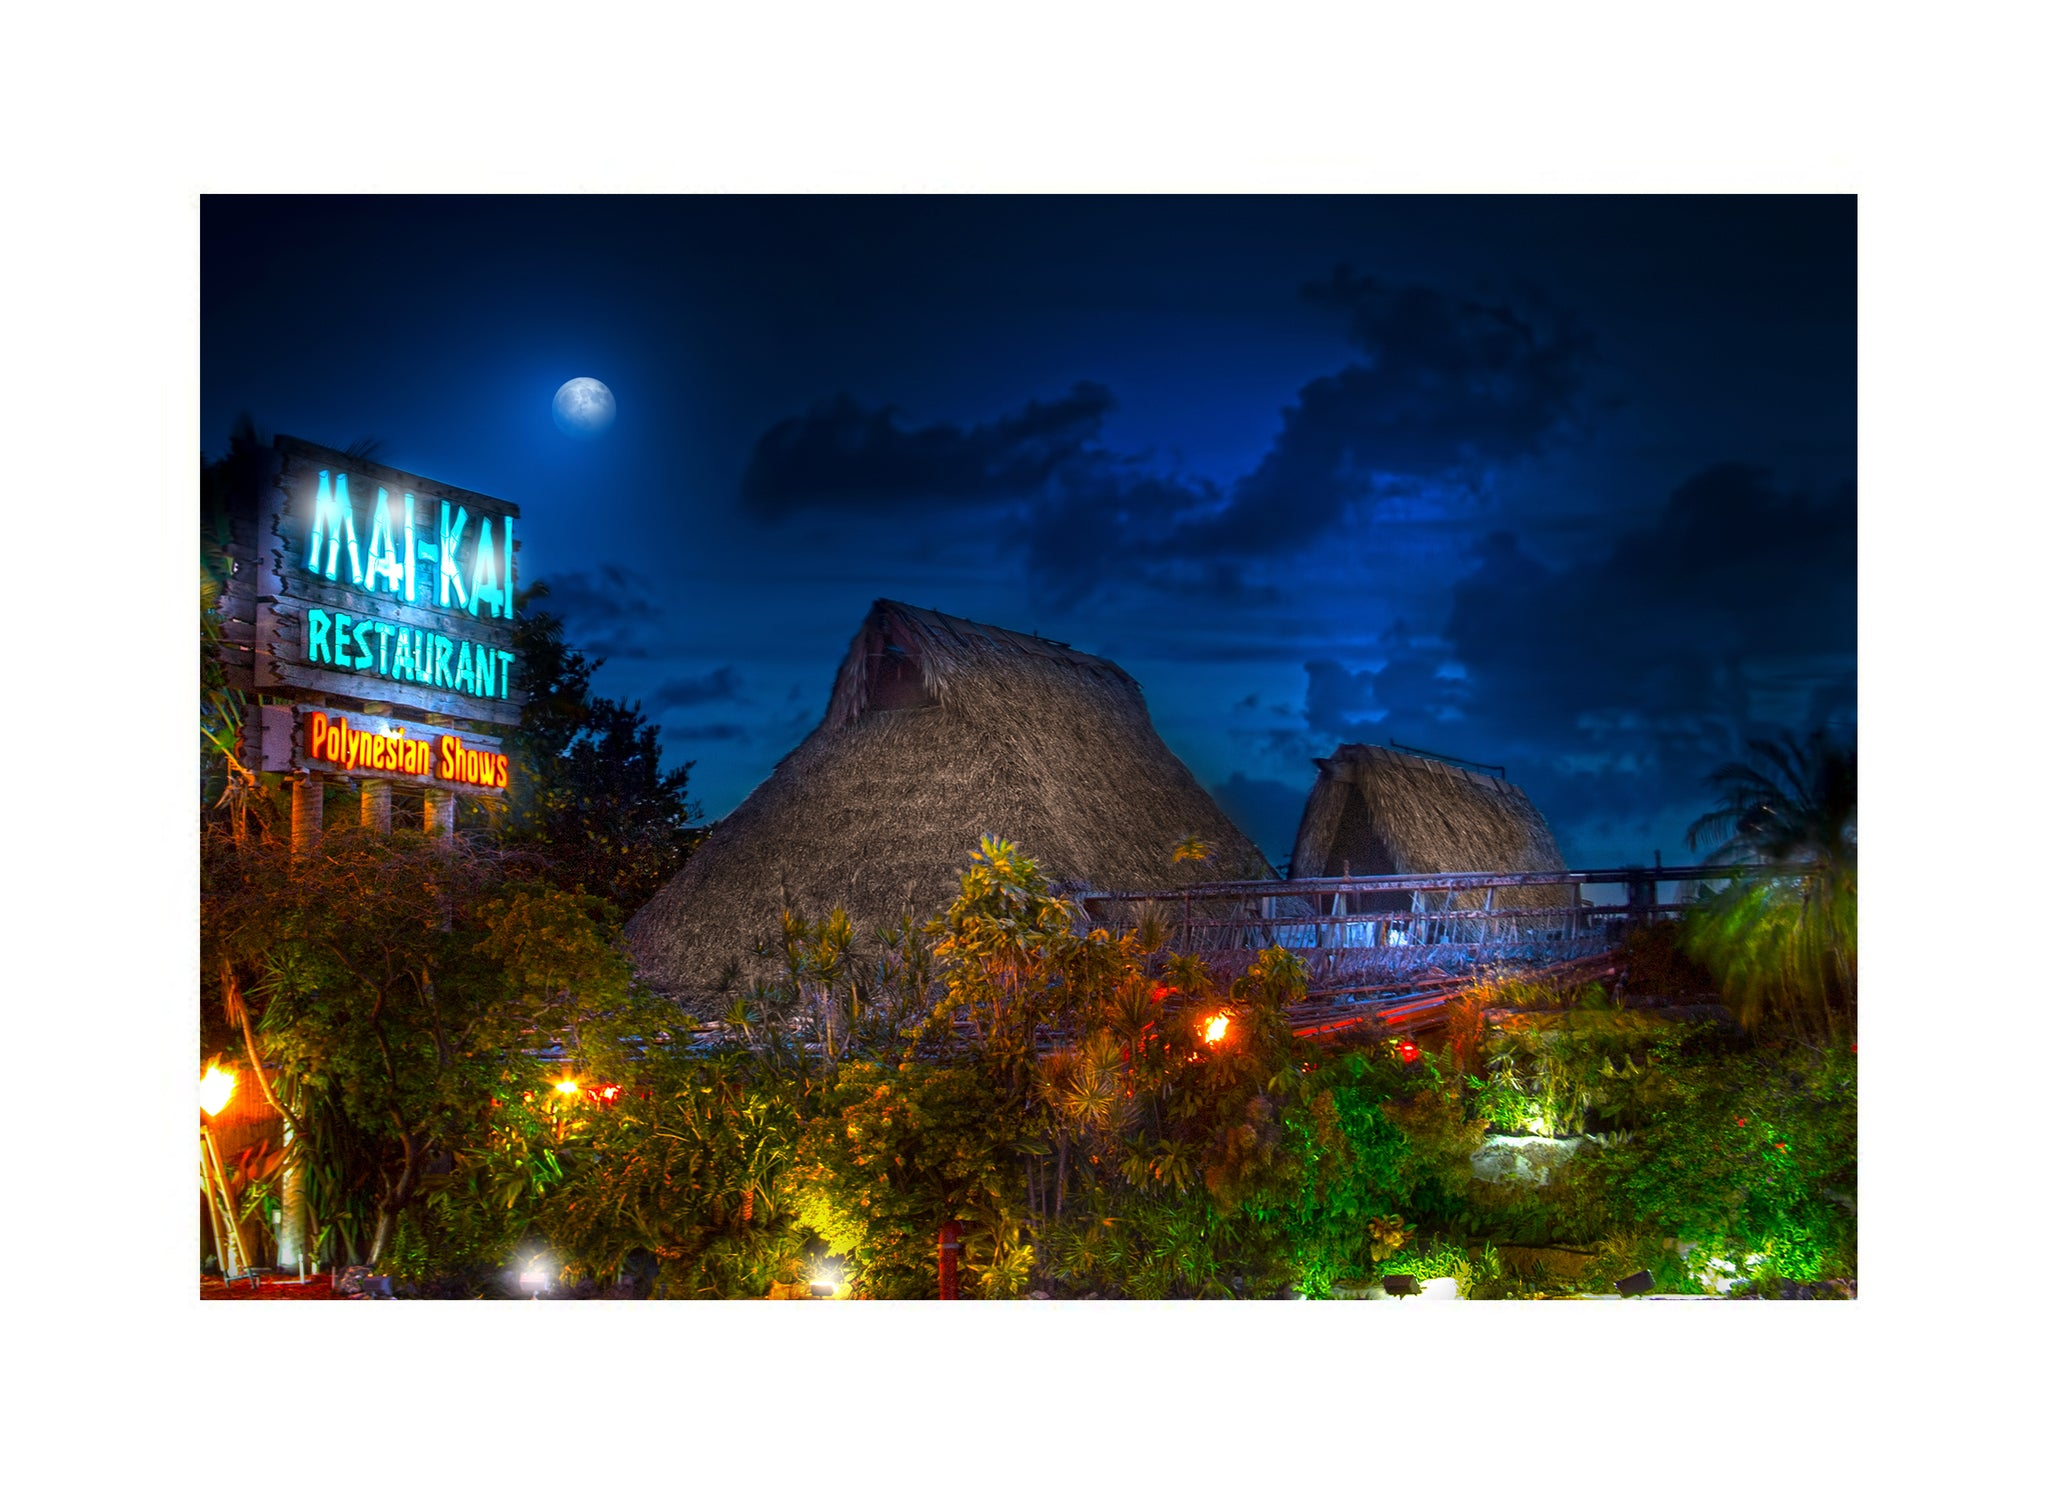 Photo of Mai-Kai Restaurant in the evening with a moon over it, photo art print